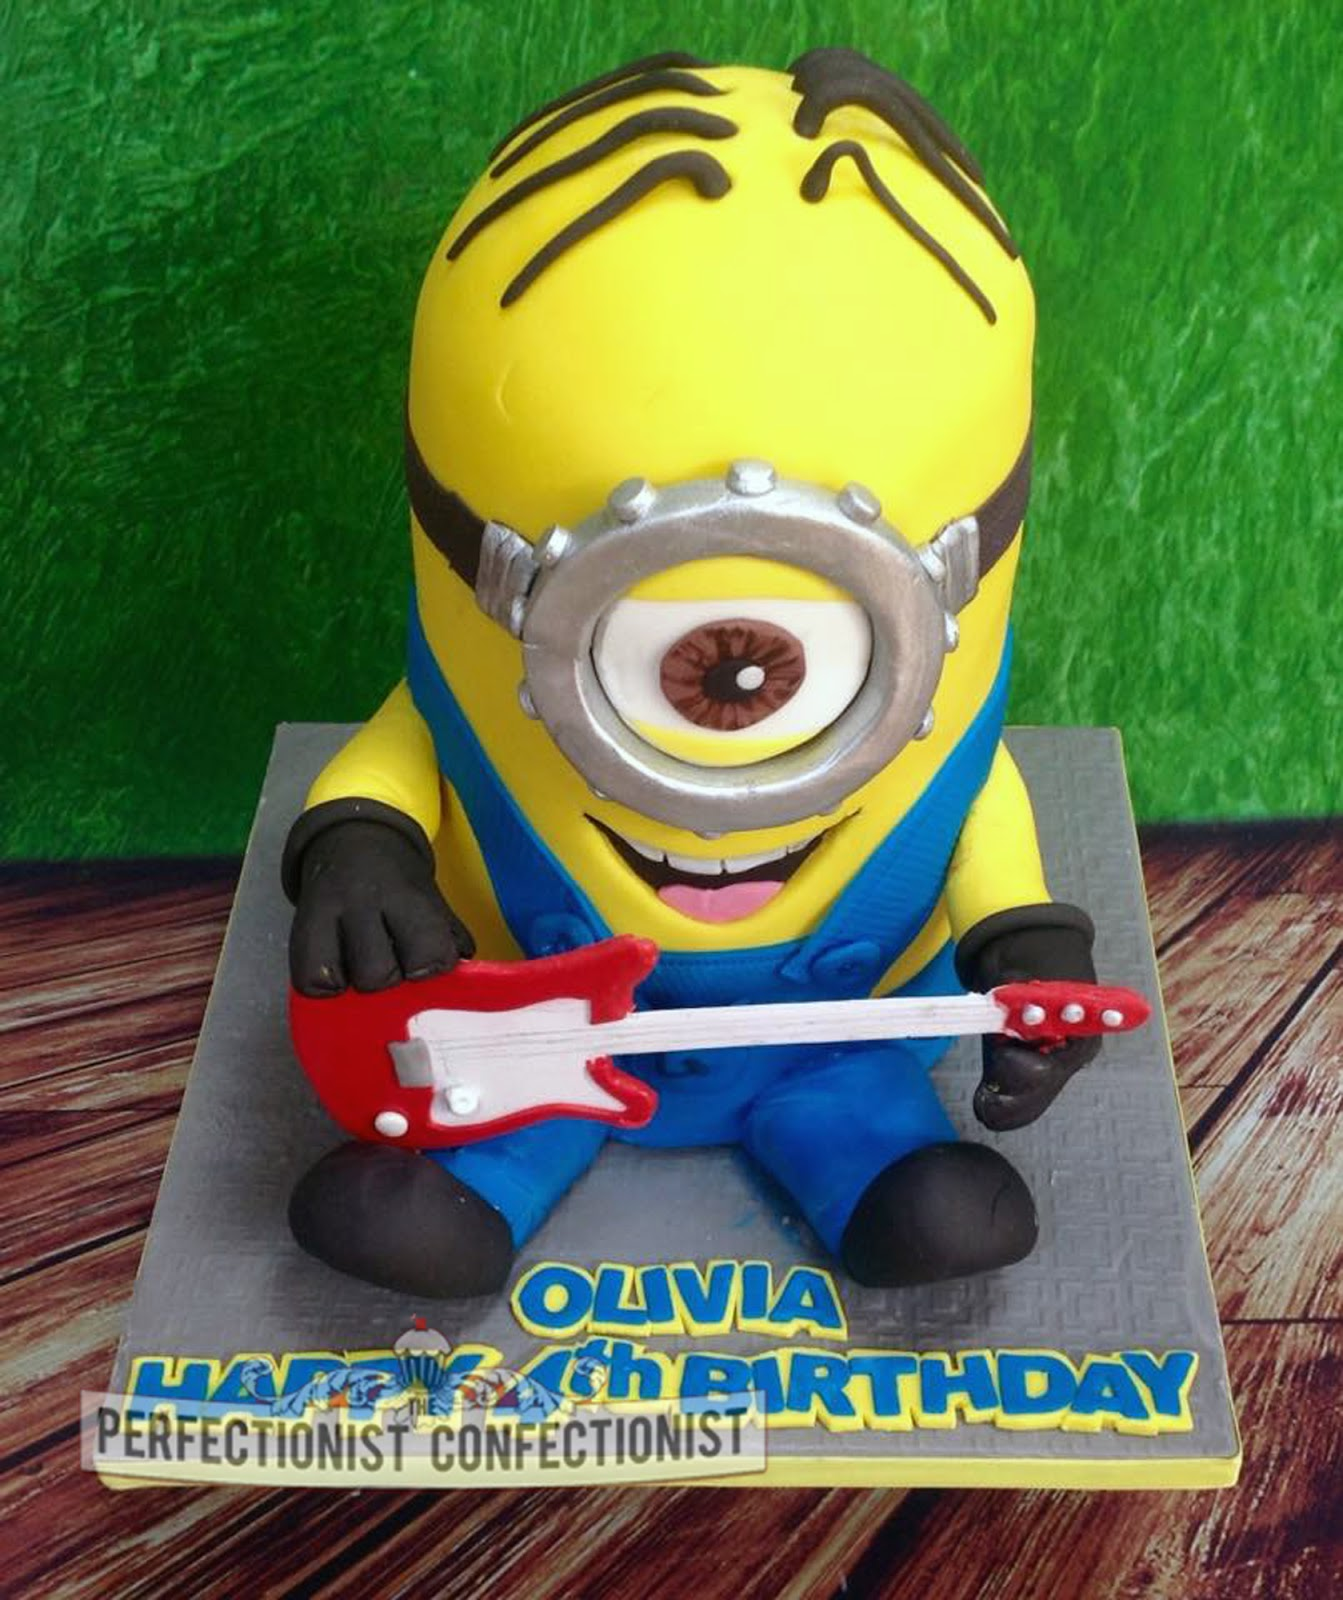 The Perfectionist Confectionist Oliva Stuart Rock and Roll Minion